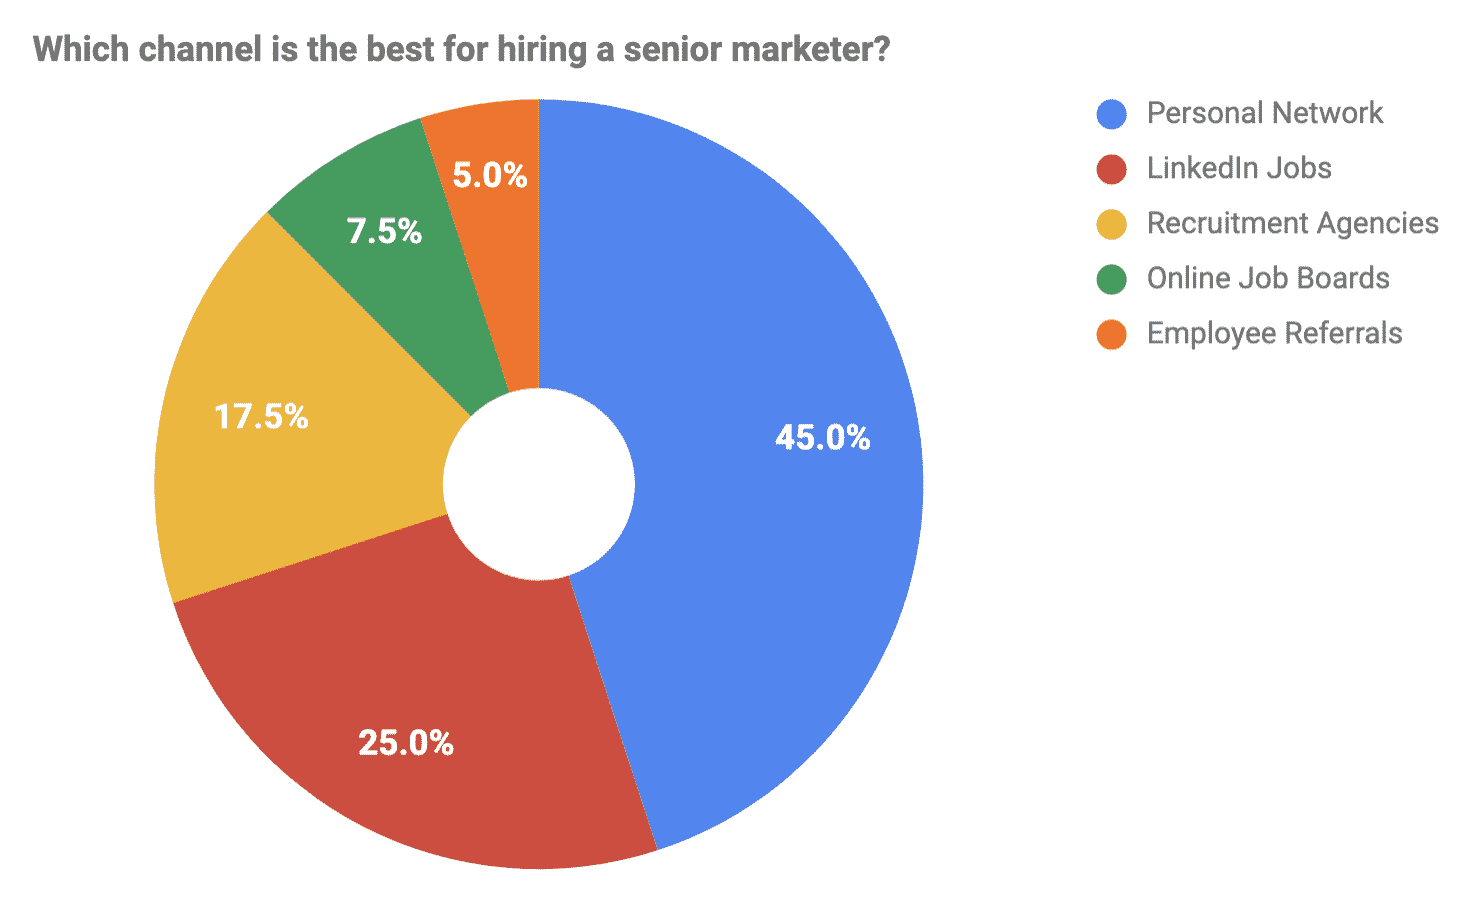 , Why Do Leaders Rely on Personal Networks When Hiring Senior Marketing Talent?